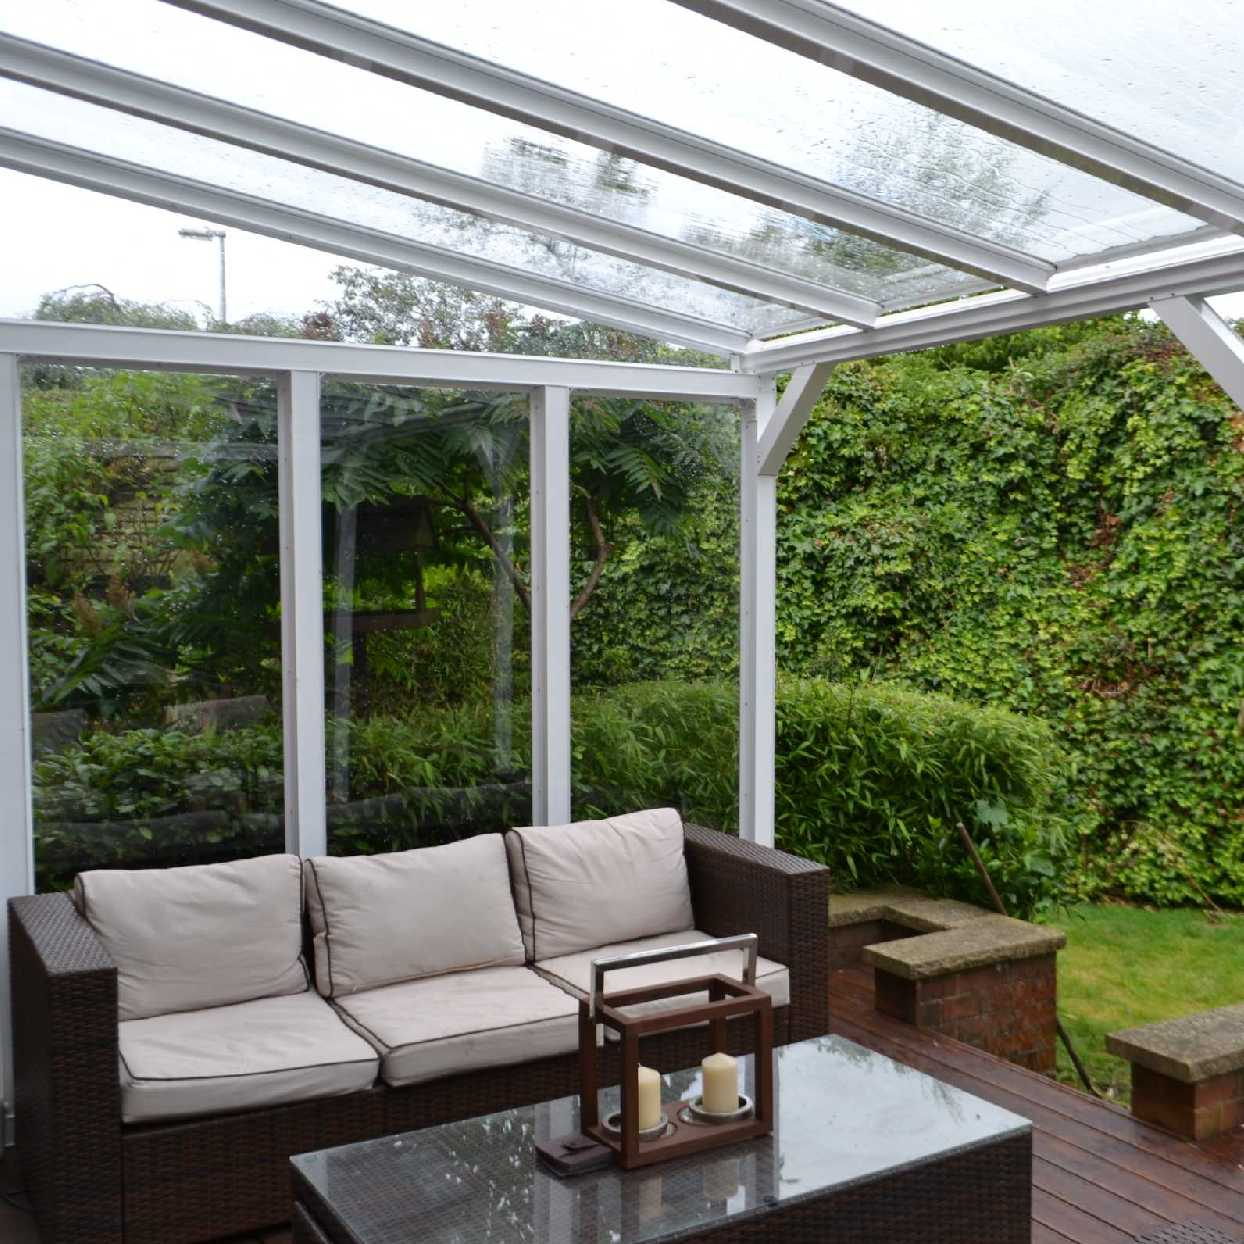 Great selection of Omega Smart Lean-To Canopy with 16mm Polycarbonate Glazing - 9.6m (W) x 4.5m (P), (5) Supporting Posts